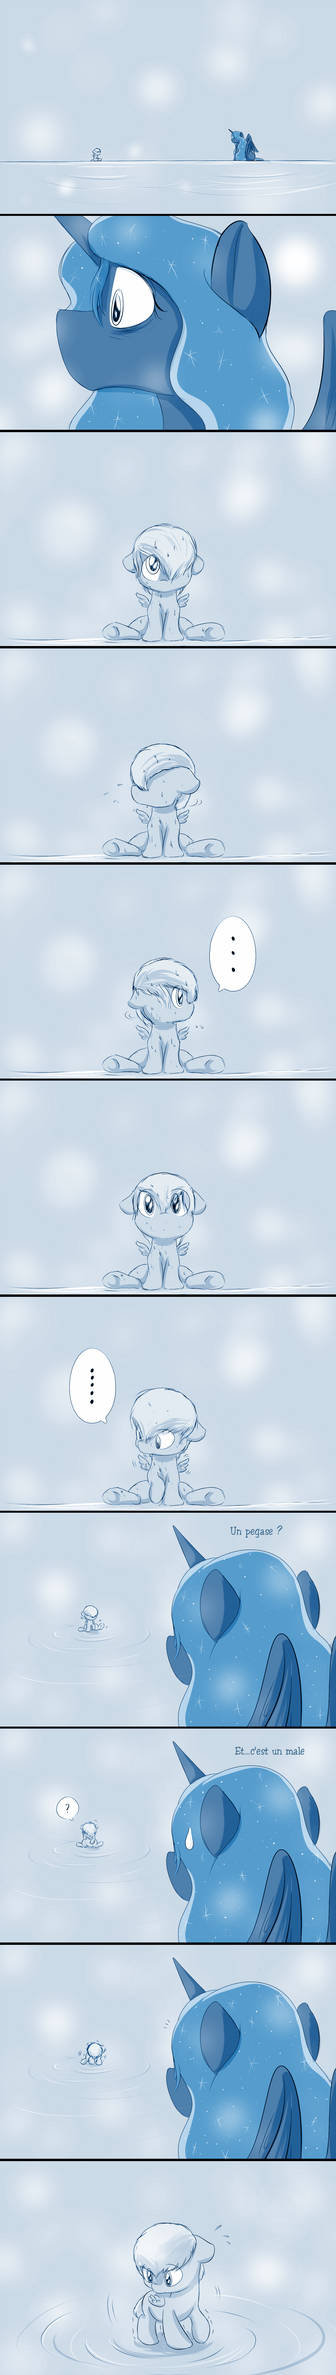 Page5 By Phuocthiencreation-dal6ghd Fr